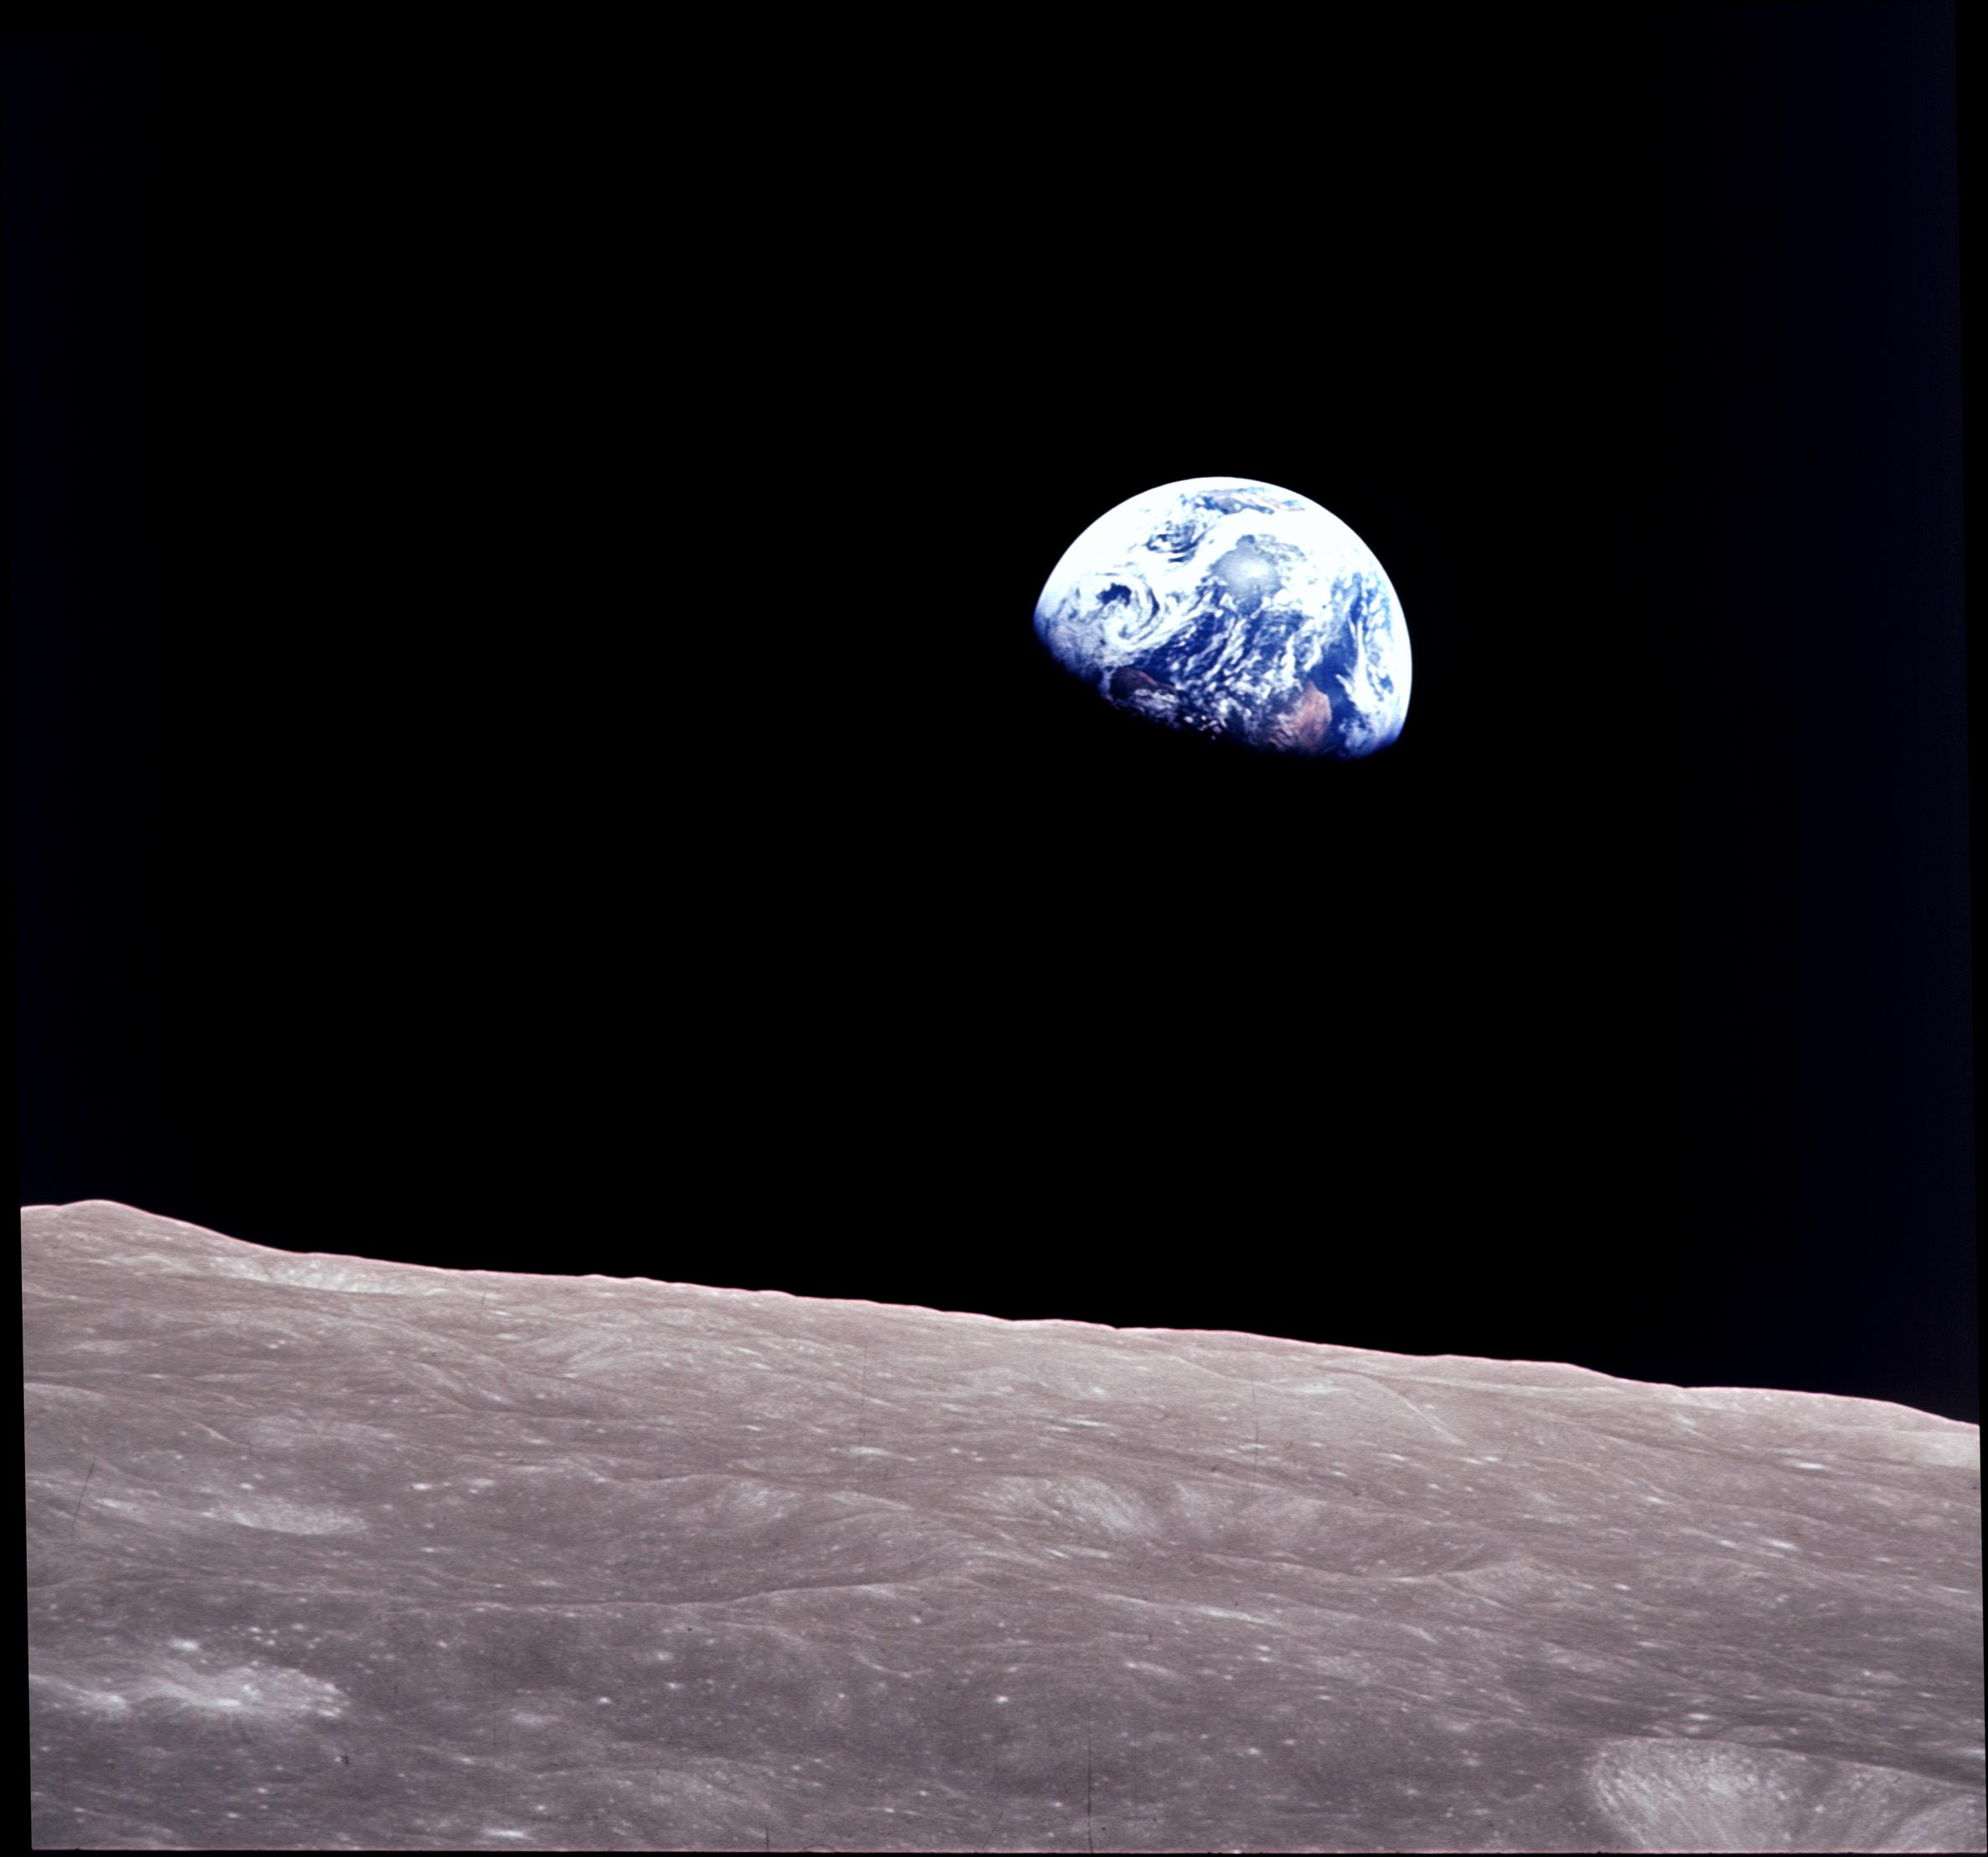 Earth of view from moon